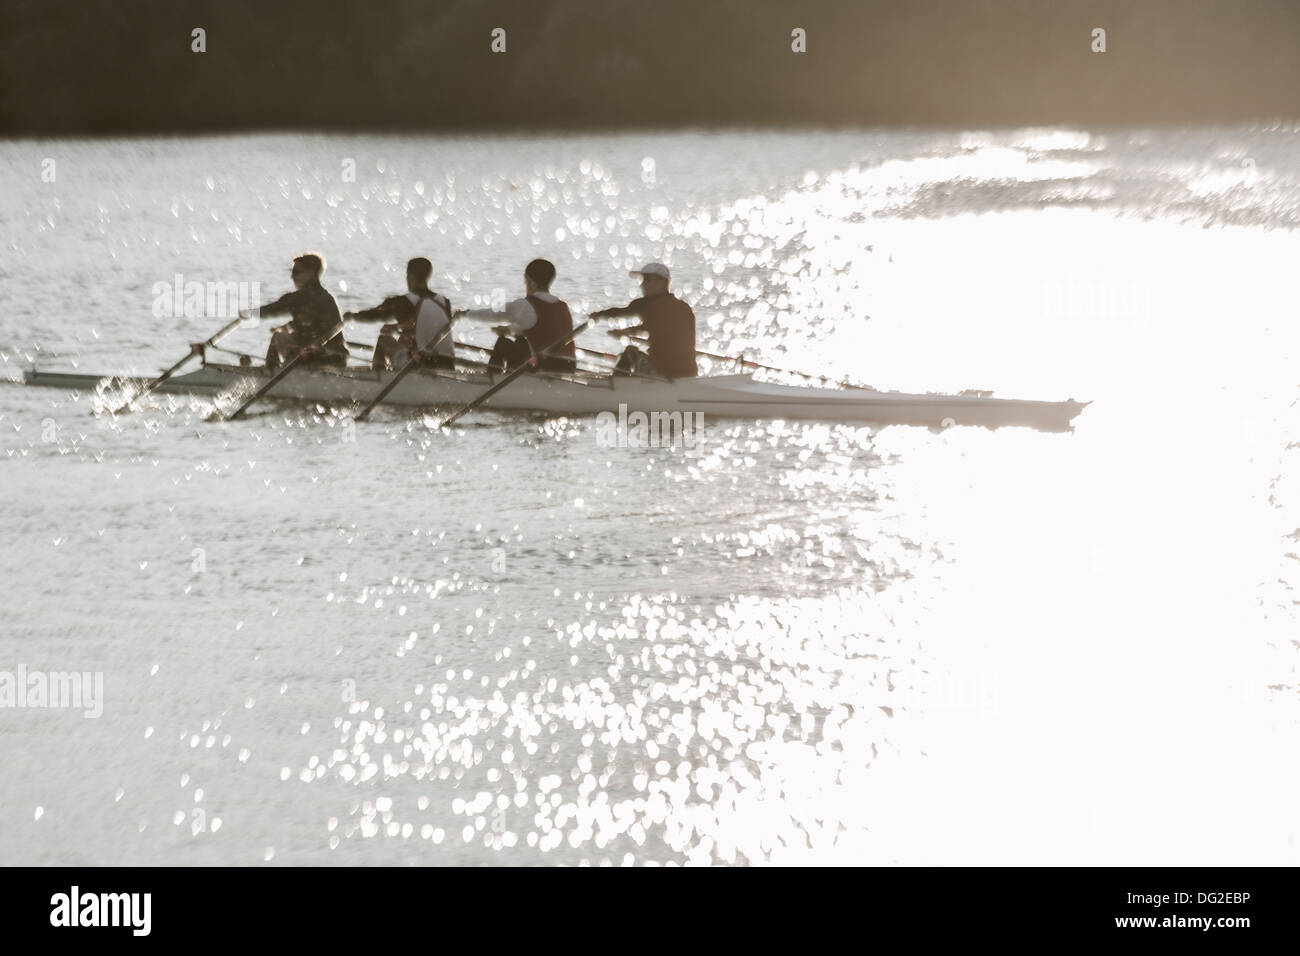 Canada,Ontario,Saint Catharines, The Henley Royal Regatta, rowers - Stock Image